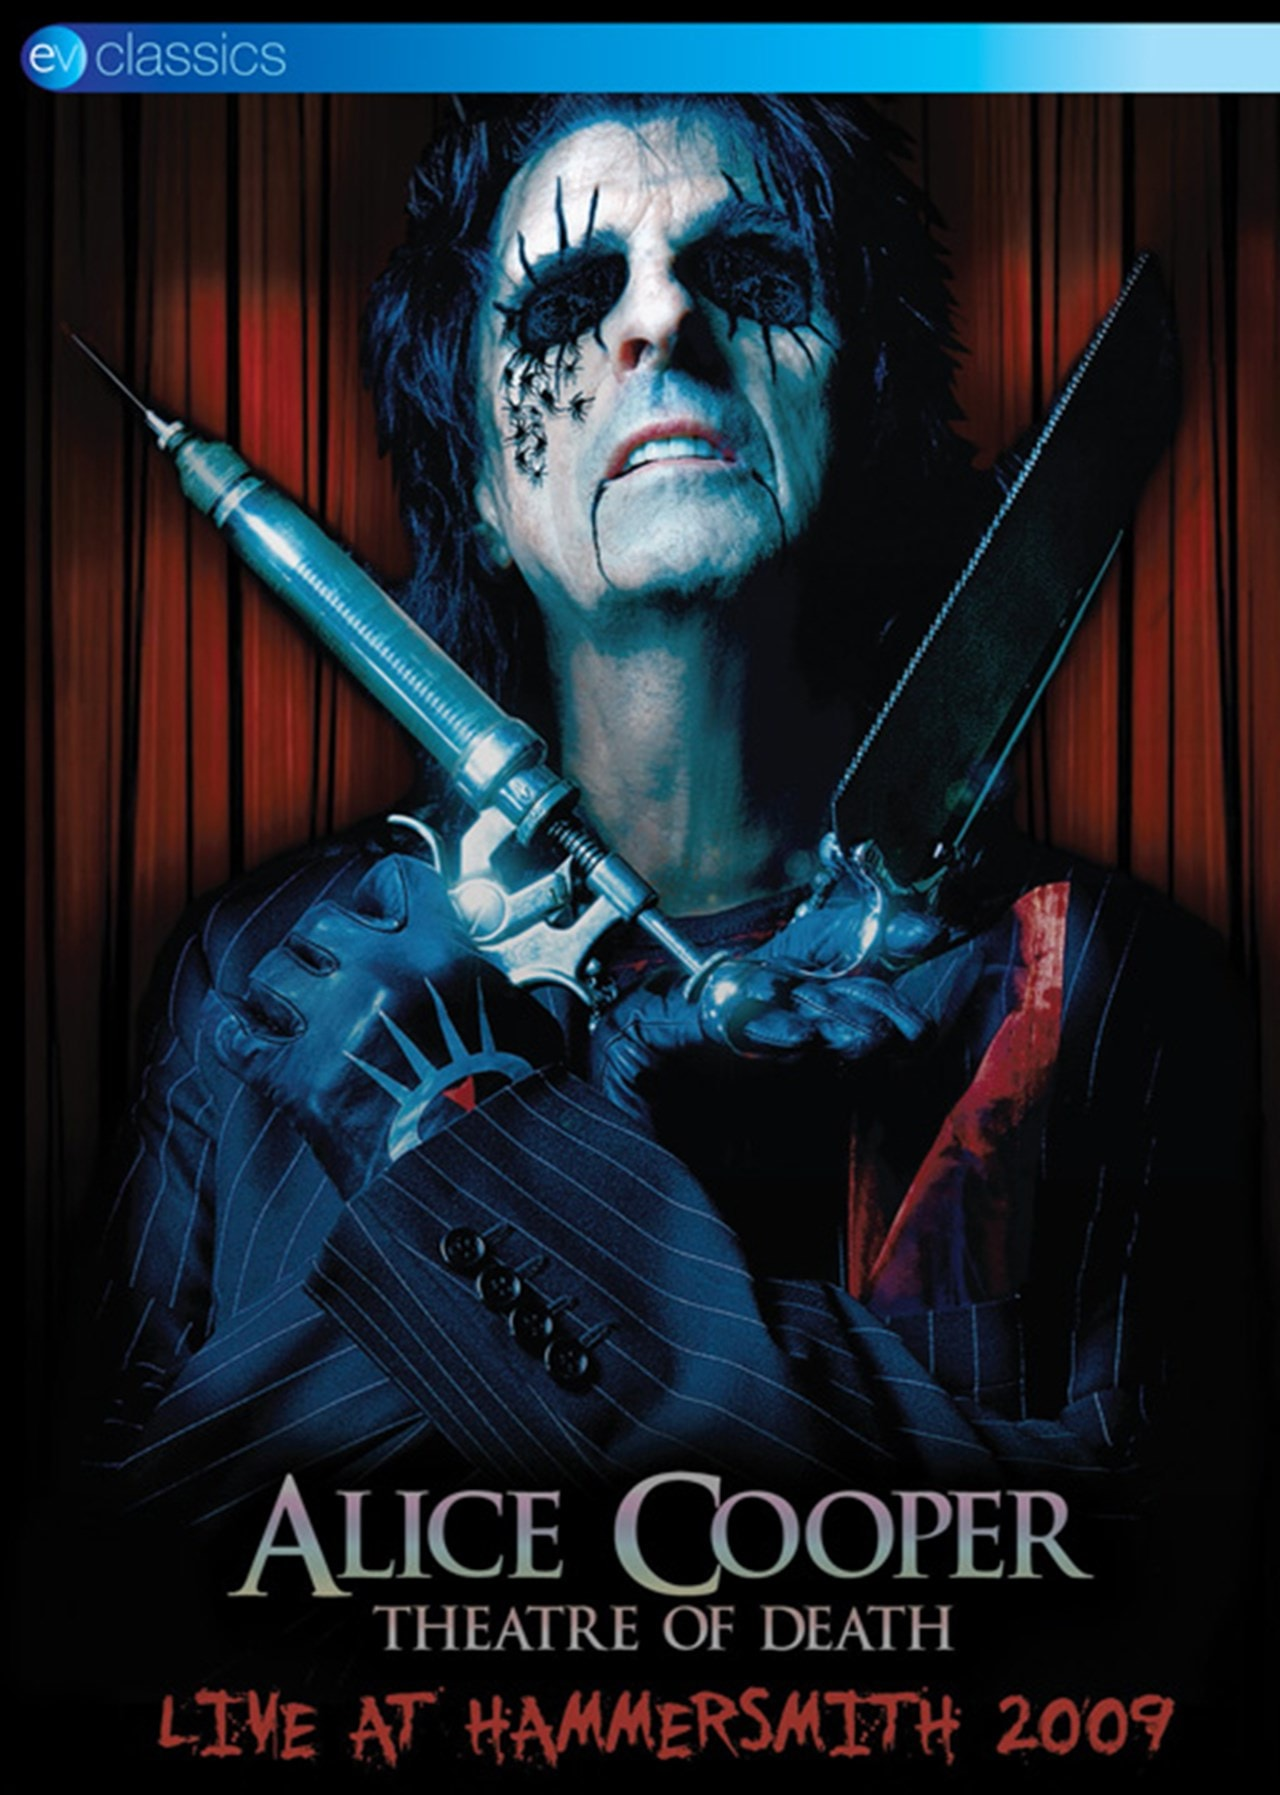 Alice Cooper: Theatre of Death - Live at Hammersmith 2009 - 1